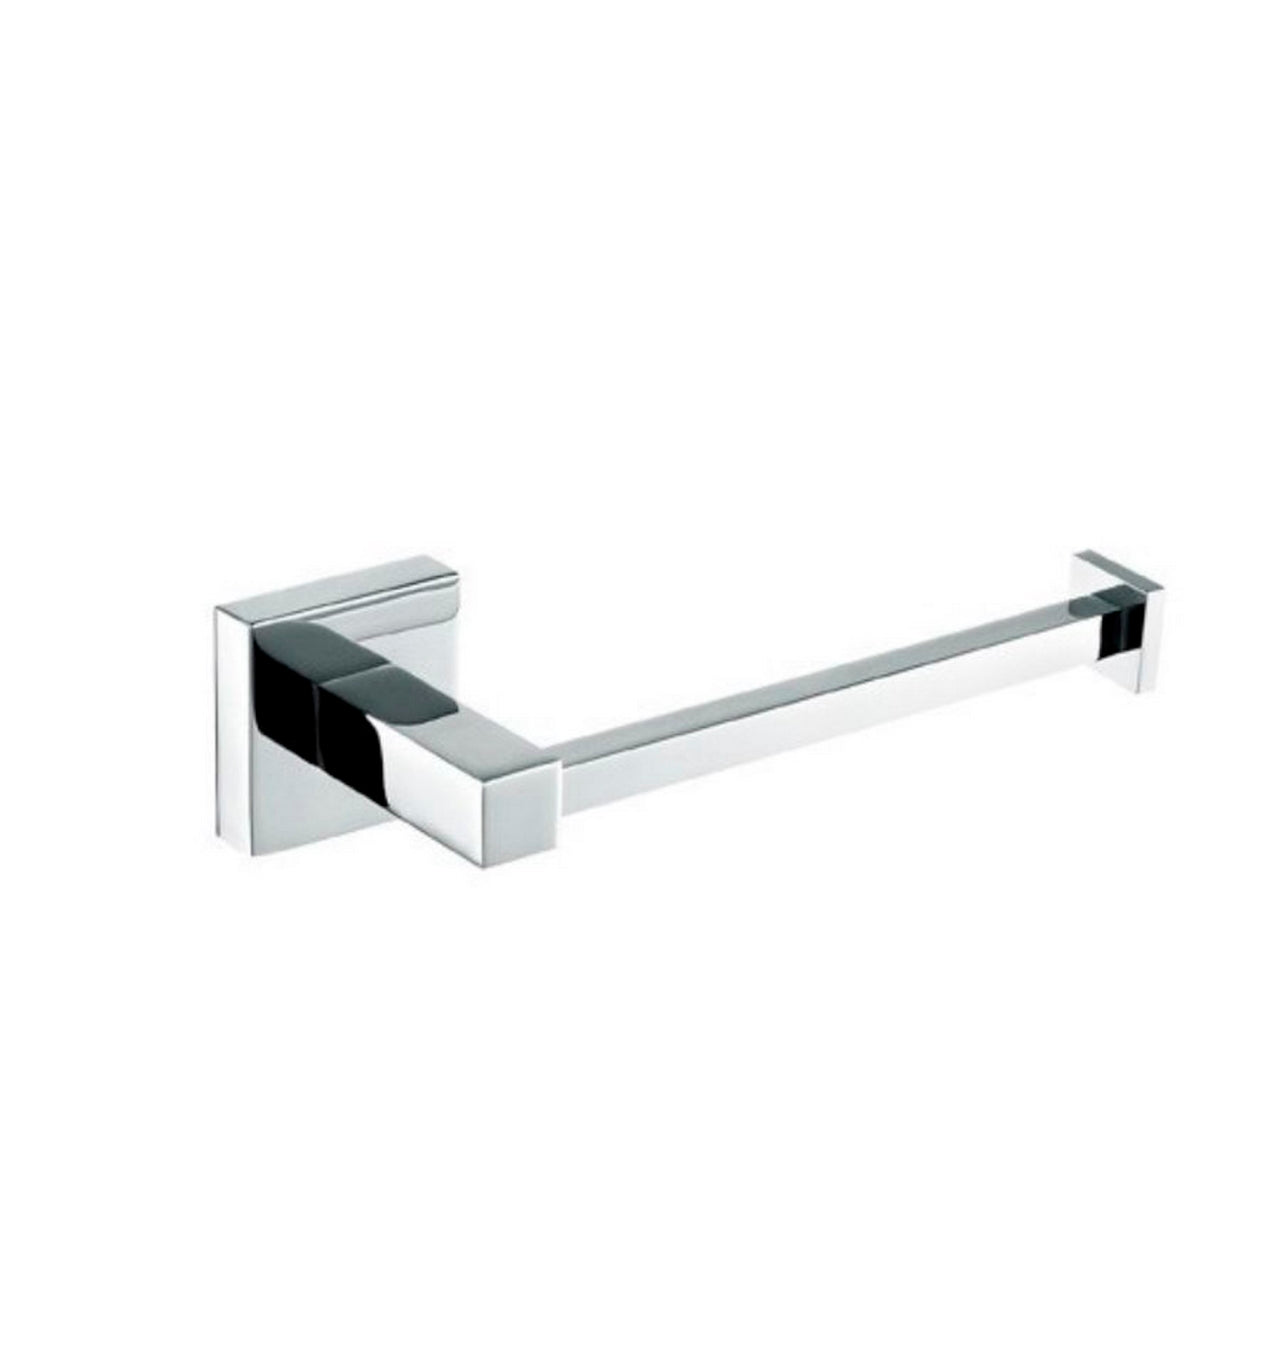 AQUA PIAZZA- Chrome Toilet Paper Holder - Vanity Sale